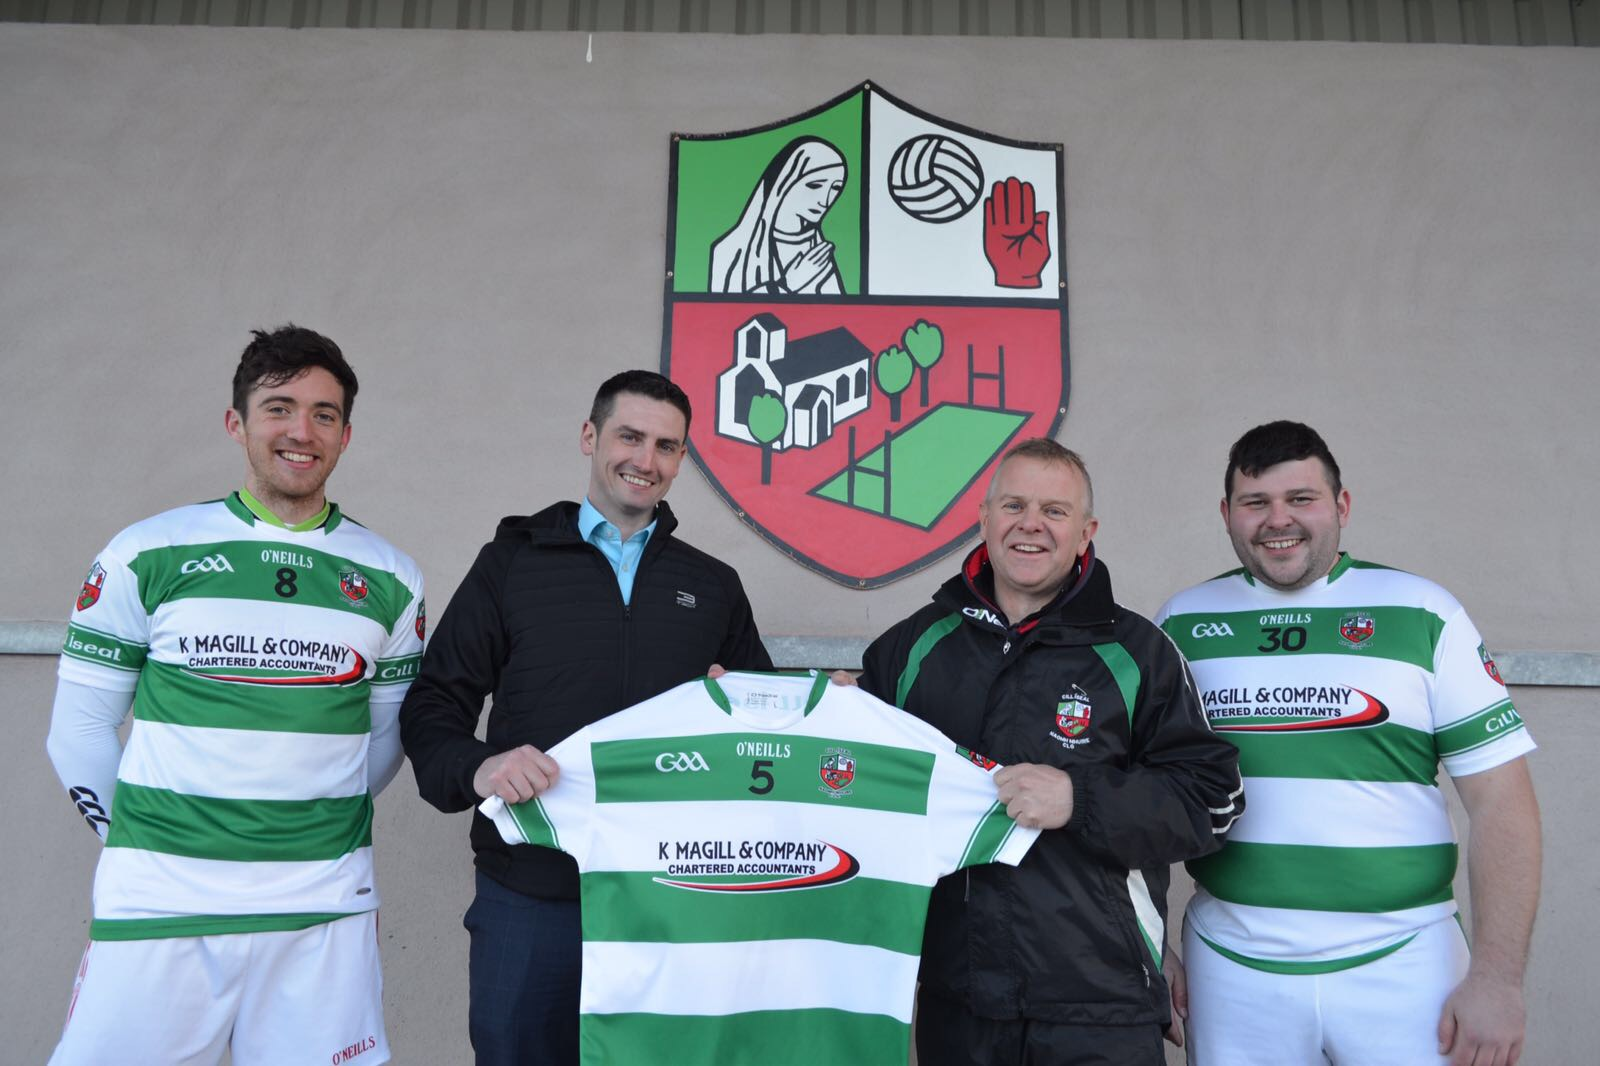 Killeeshil presented with new jerseys